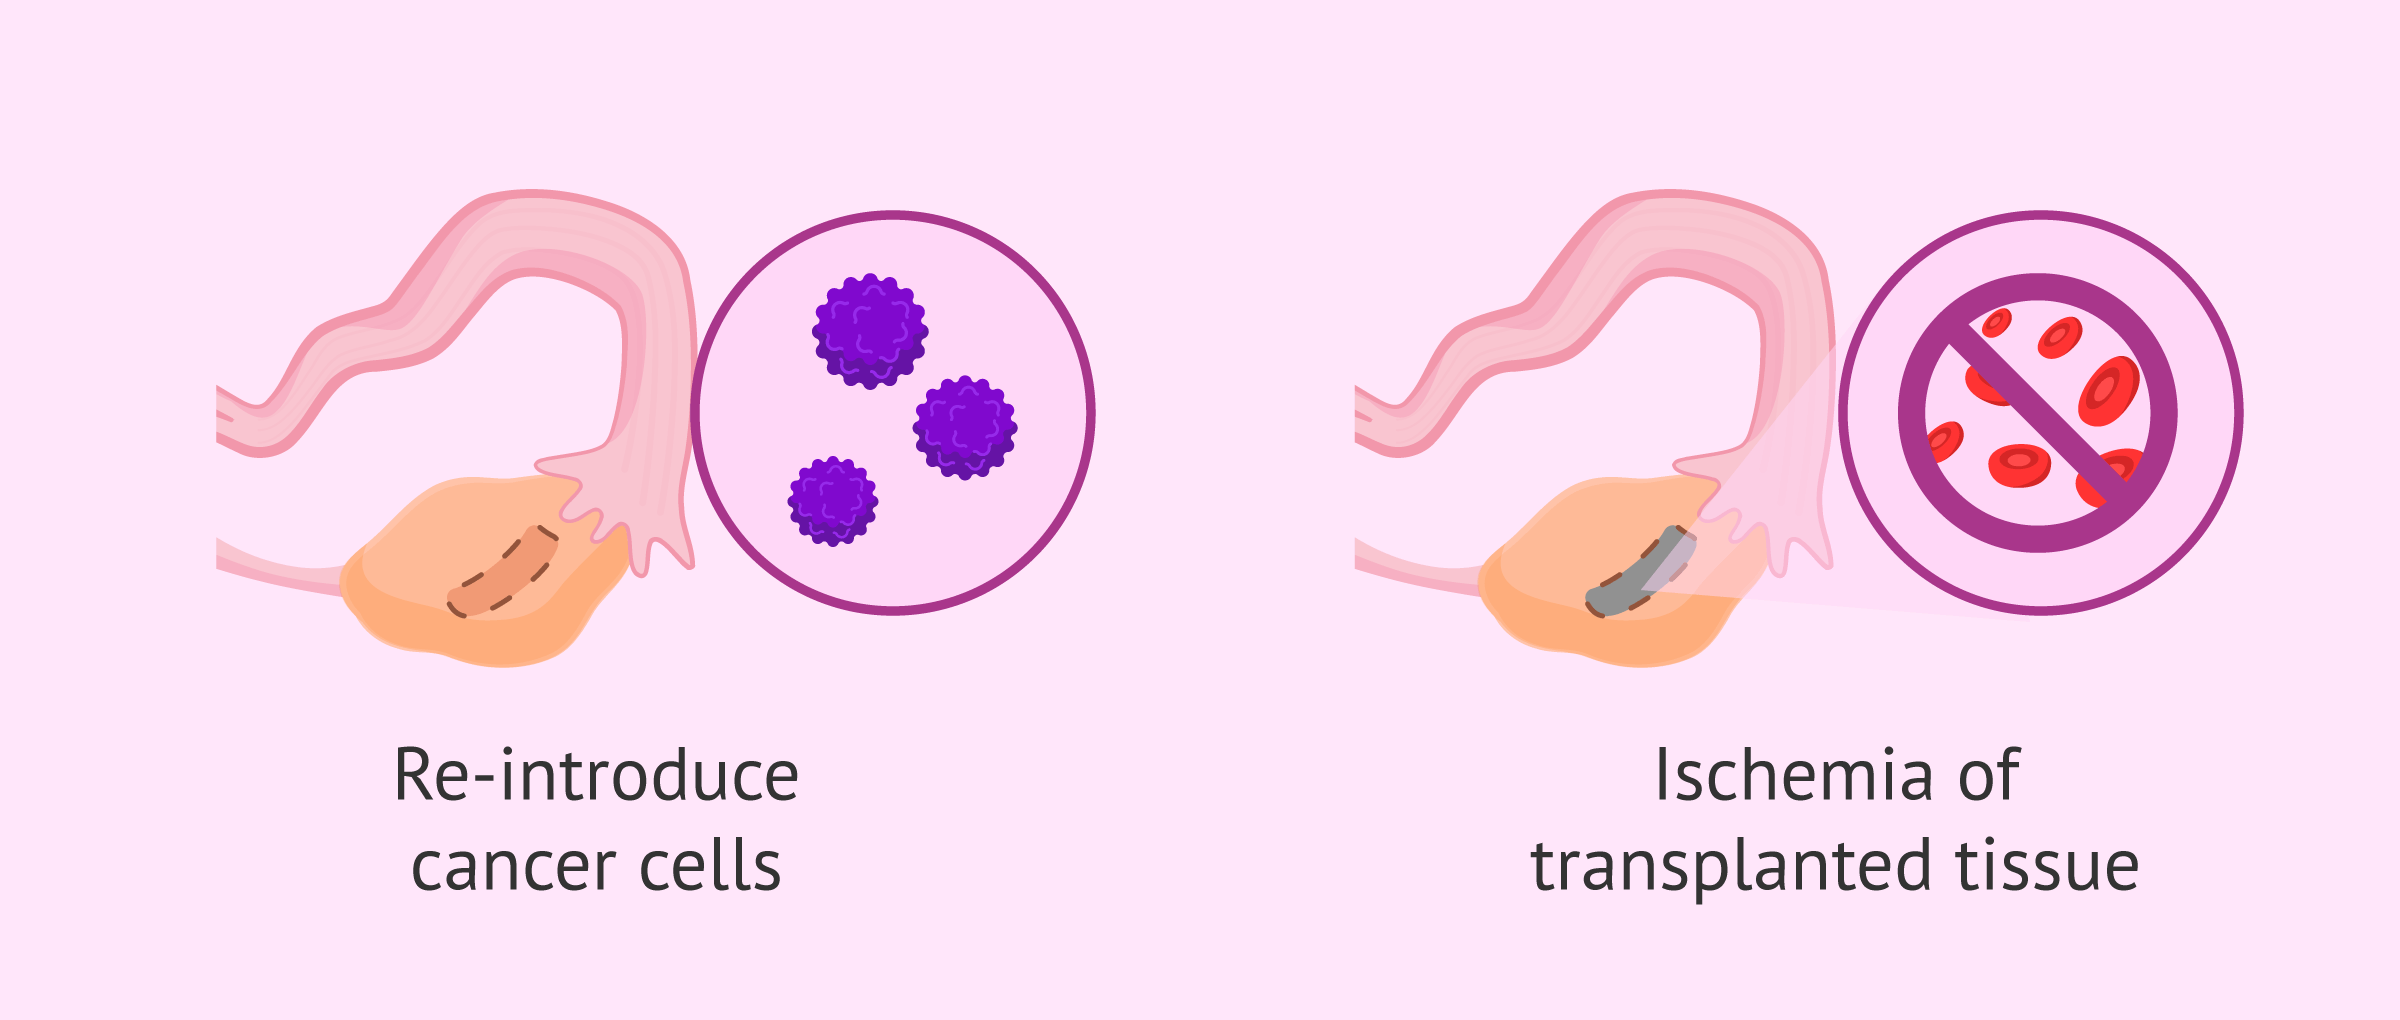 Limitations of Ovarian Tissue Transplantation